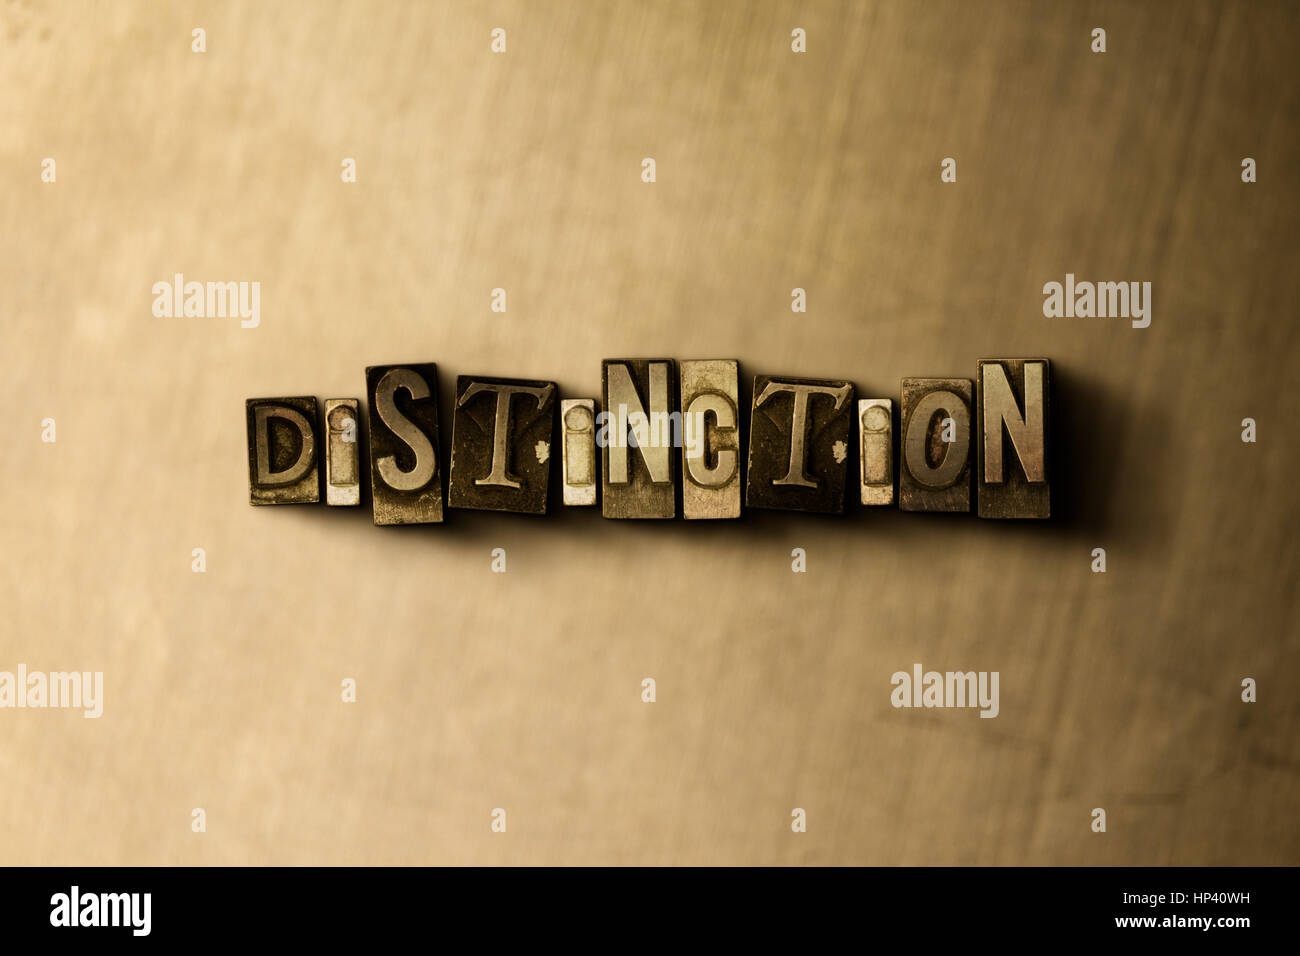 DISTINCTION - close-up of grungy vintage typeset word on metal backdrop. Royalty free stock illustration.  Can be - Stock Image